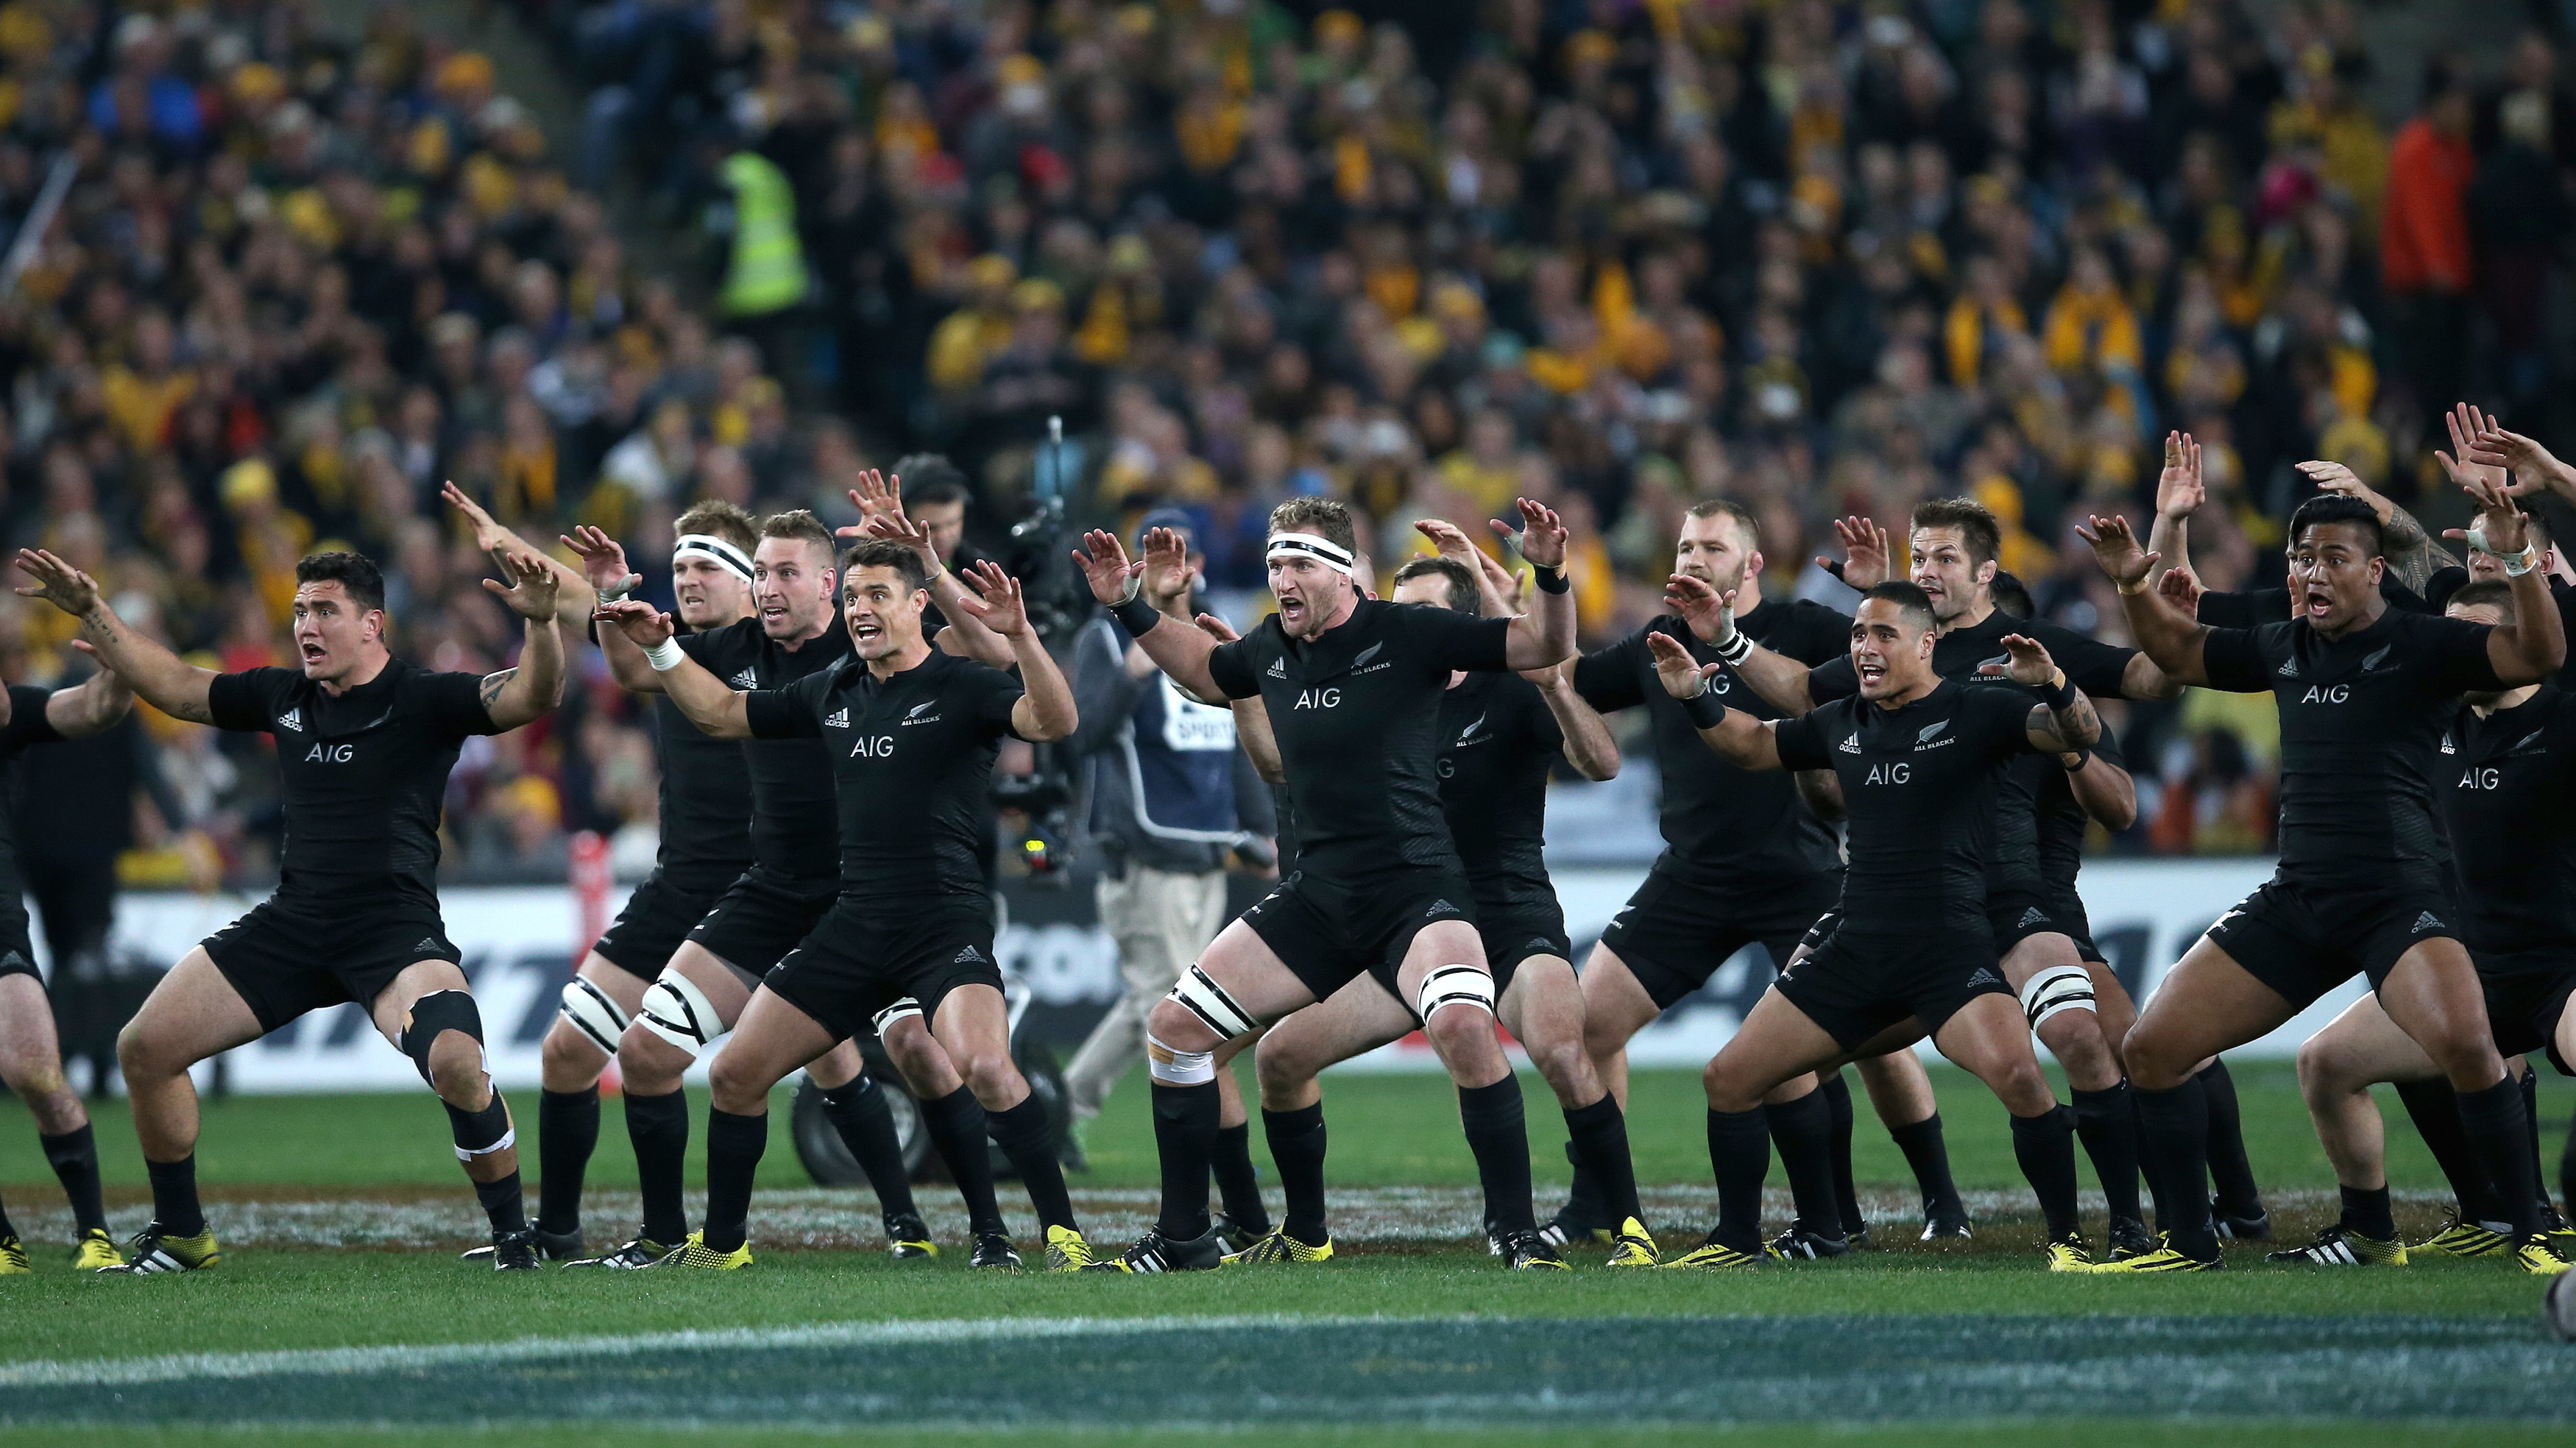 The All Blacks perform the haka before the start of the 2015 Rugby World Cup Pool C match between Argentina and New Zealand in London.